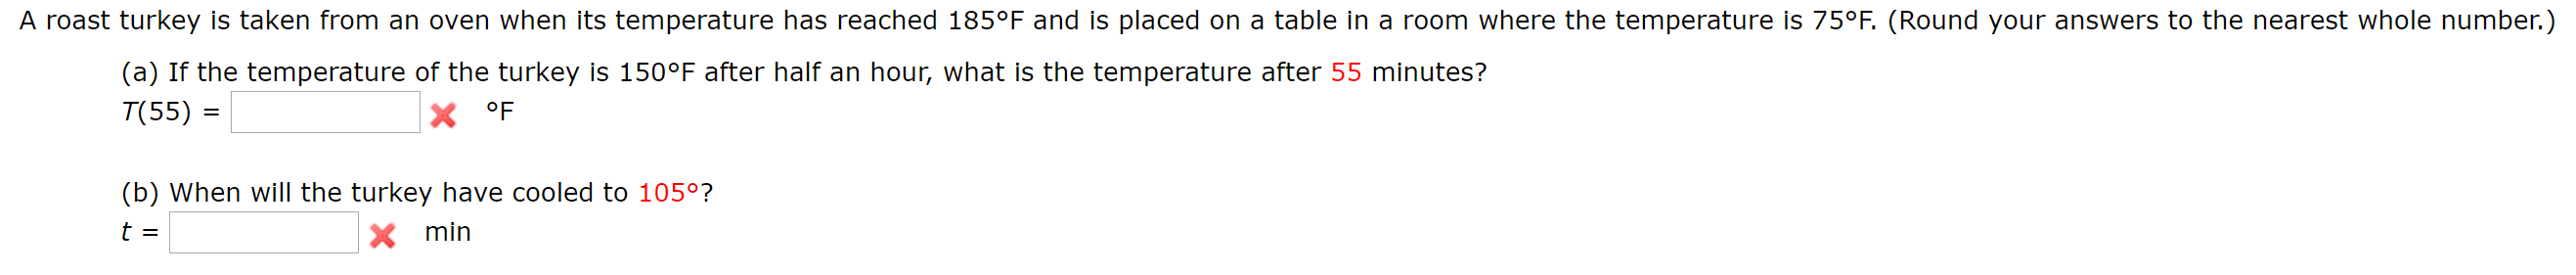 A roast turkey is taken from an oven when its temperature has reached 185°F and is placed on a table in a room where the temperature is 75°F. (Round your answers to the nearest whole number.) (a) If the temperature of the turkey is 150°F after half an hour, what is the temperature after 55 minutes? T(55) = X °F (b) When will the turkey have cooled to 105°? t = Xmin